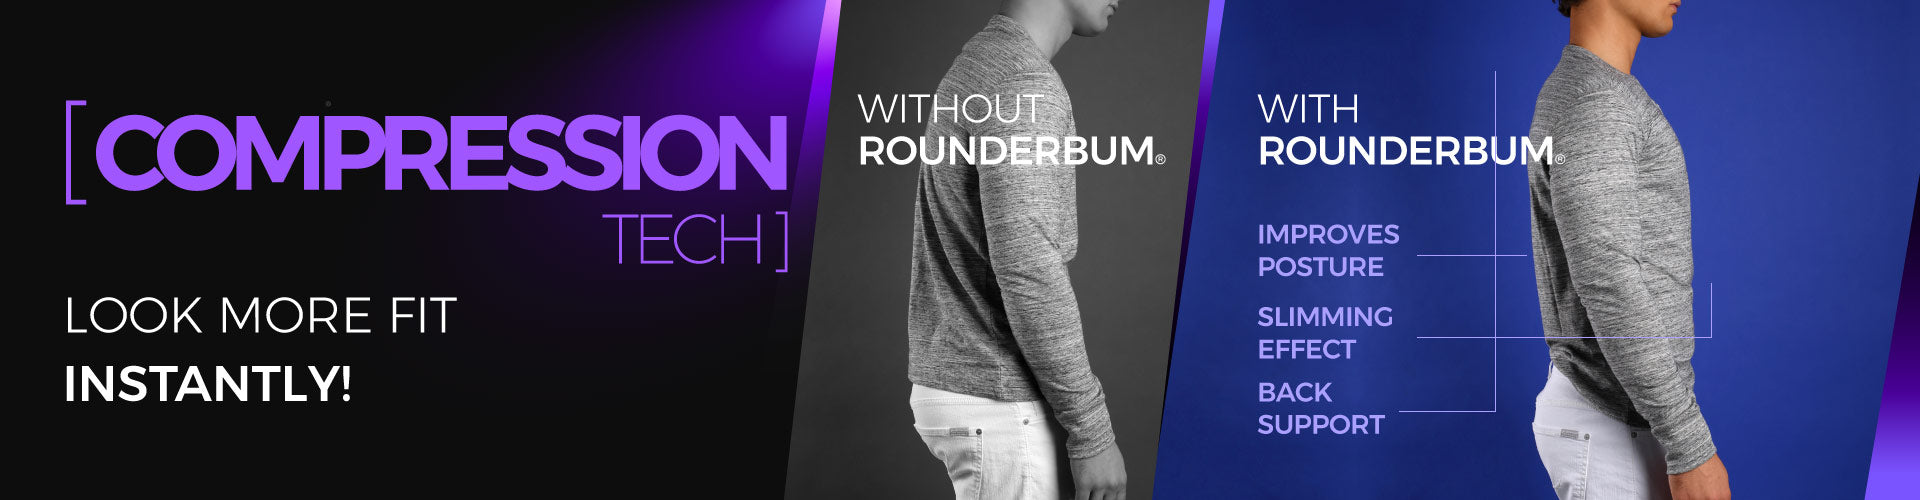 rounderbum compression tech collection underwear for men